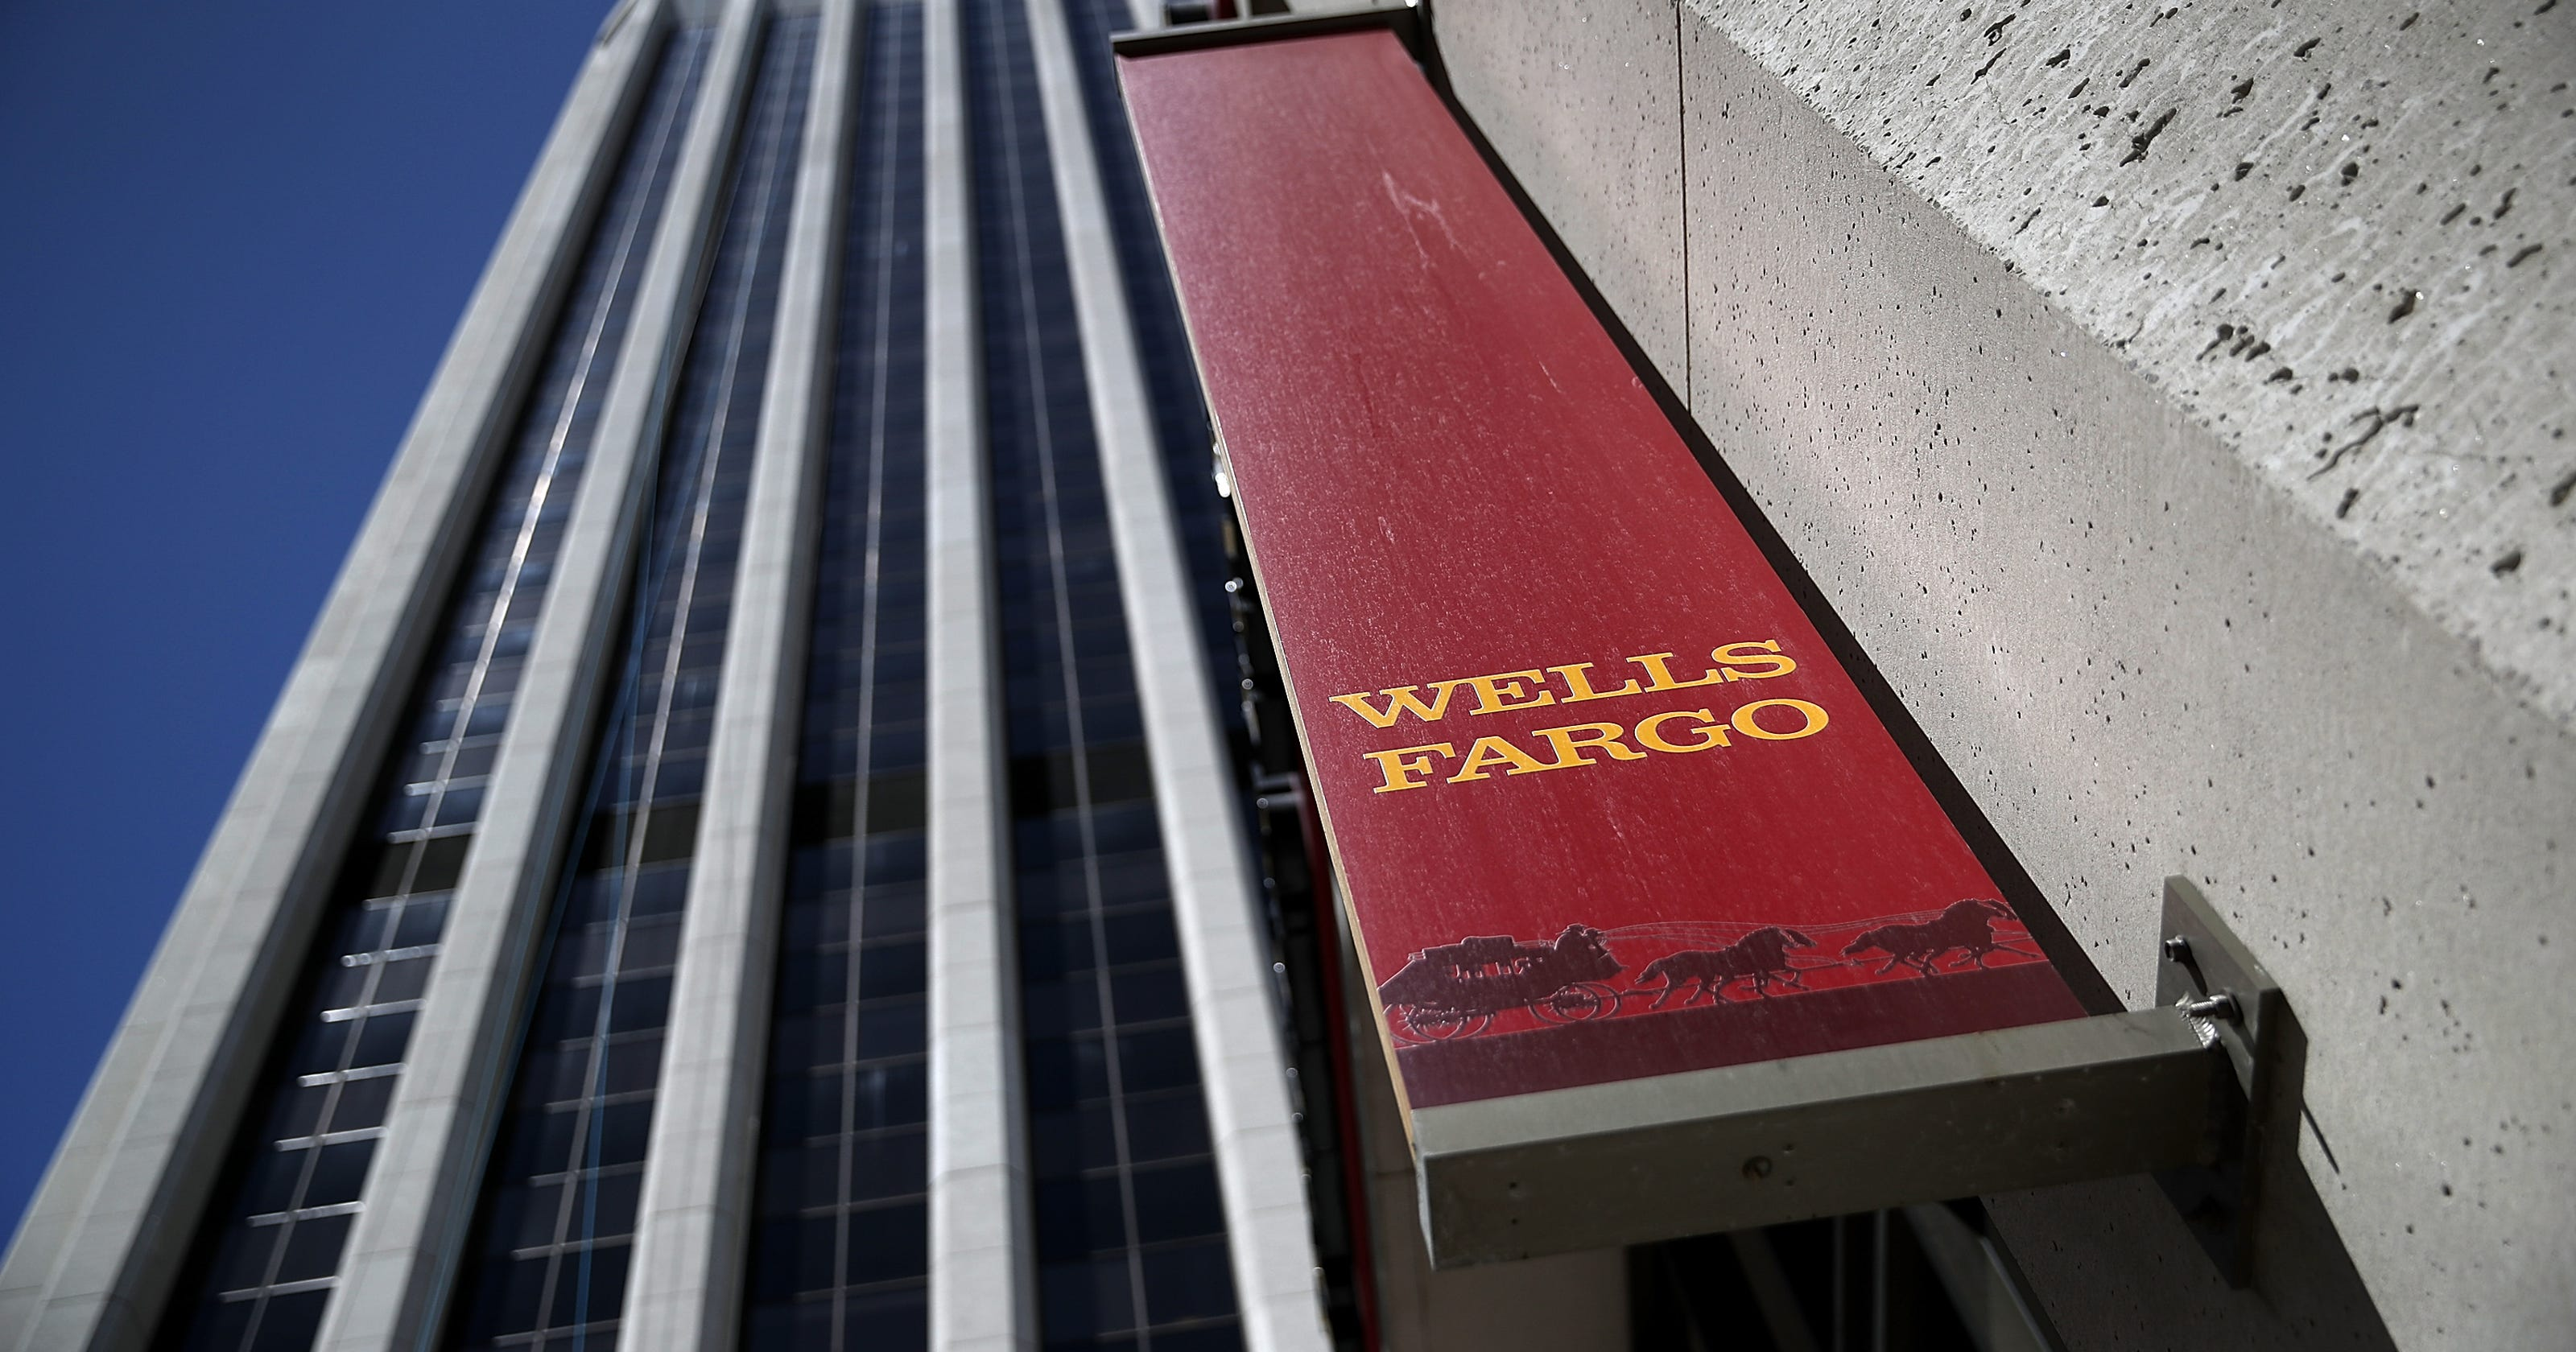 Wells Fargo Faces New Consumer Lawsuit Alleging Improper Mortgage Fees